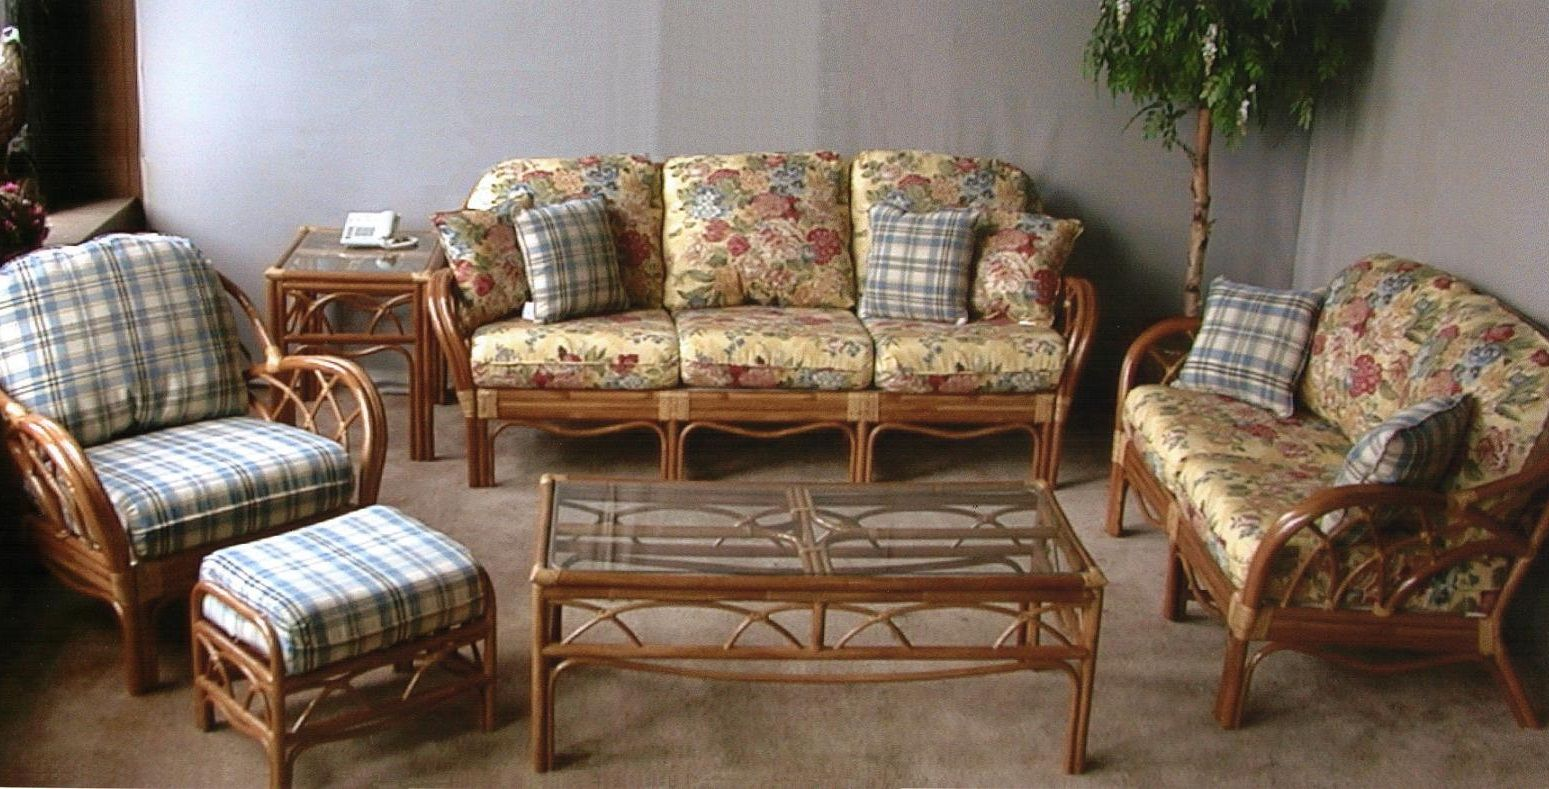 Wicker And Rattan Furniture Indoor Wicker Furniture : Jaetees Wicker, Wicker  Furniture .